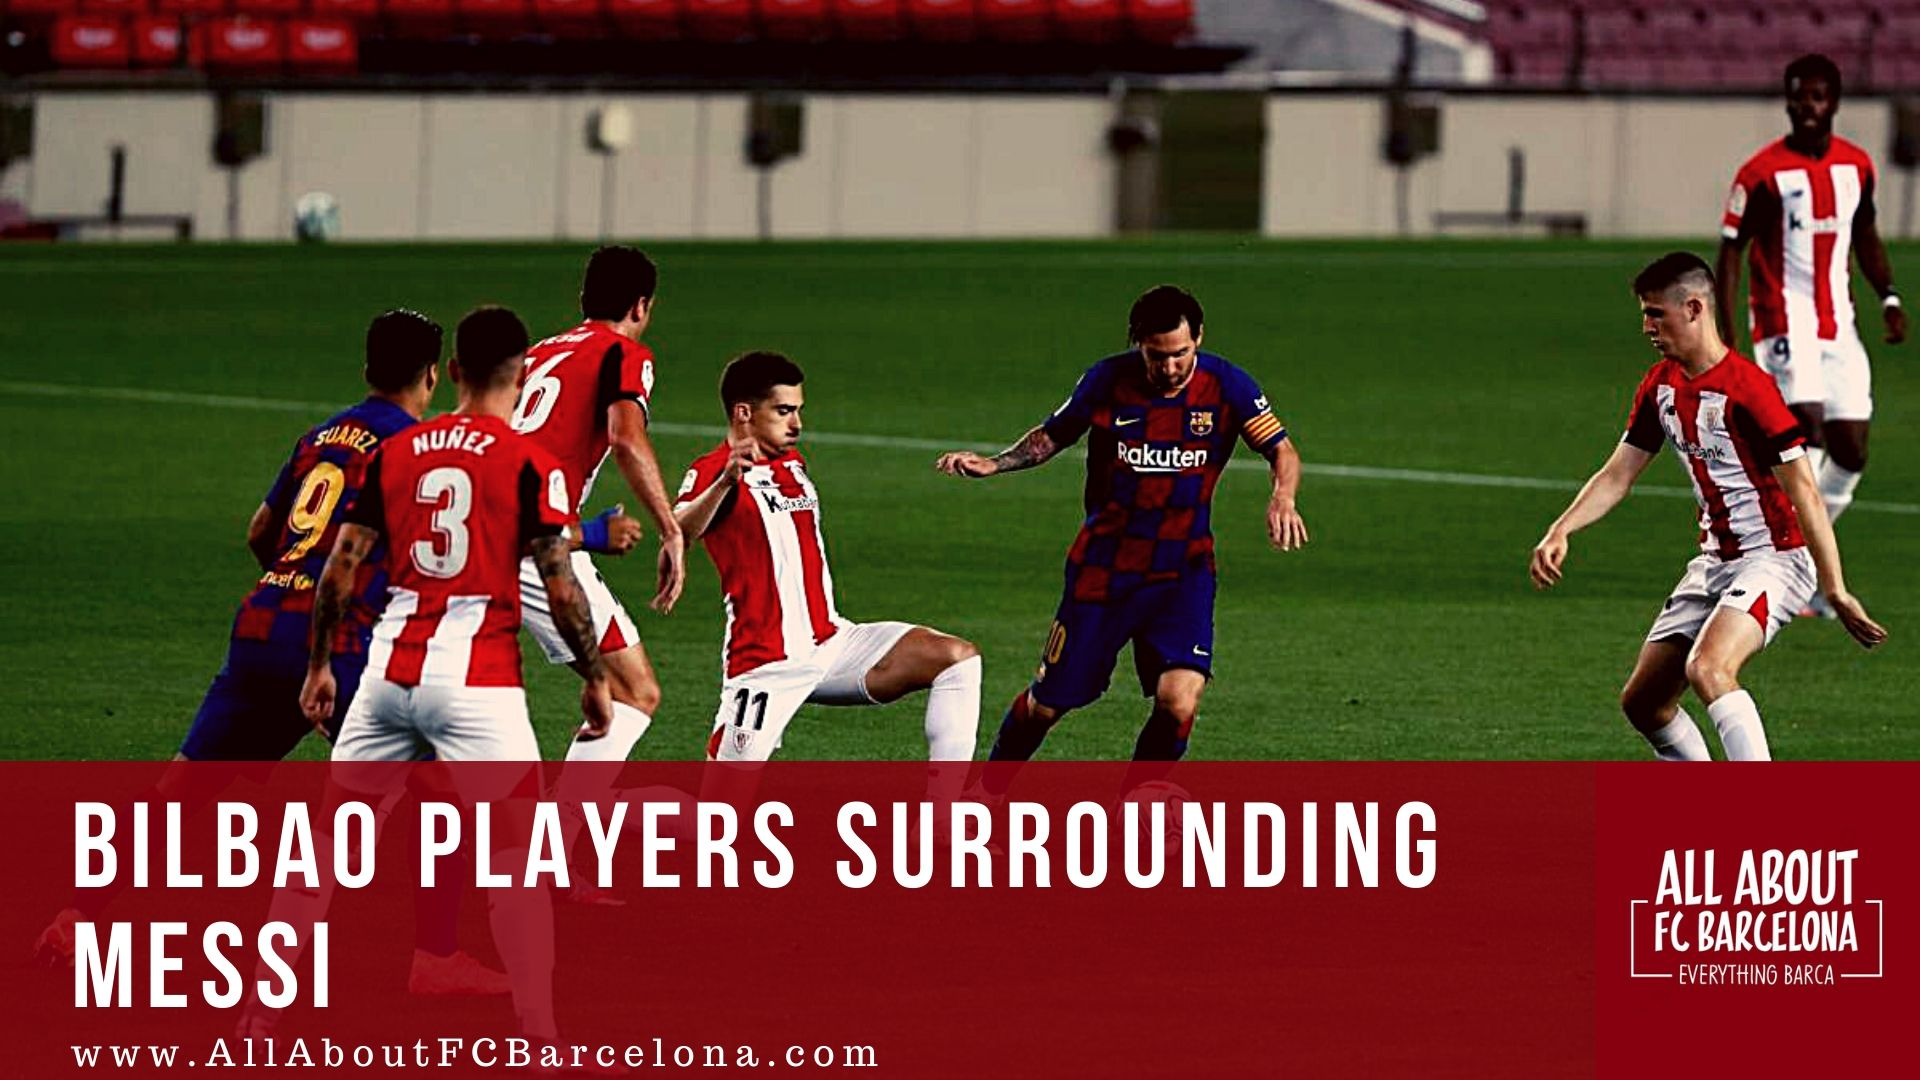 Messi surrounded by lots of Athletic Bilbao Players